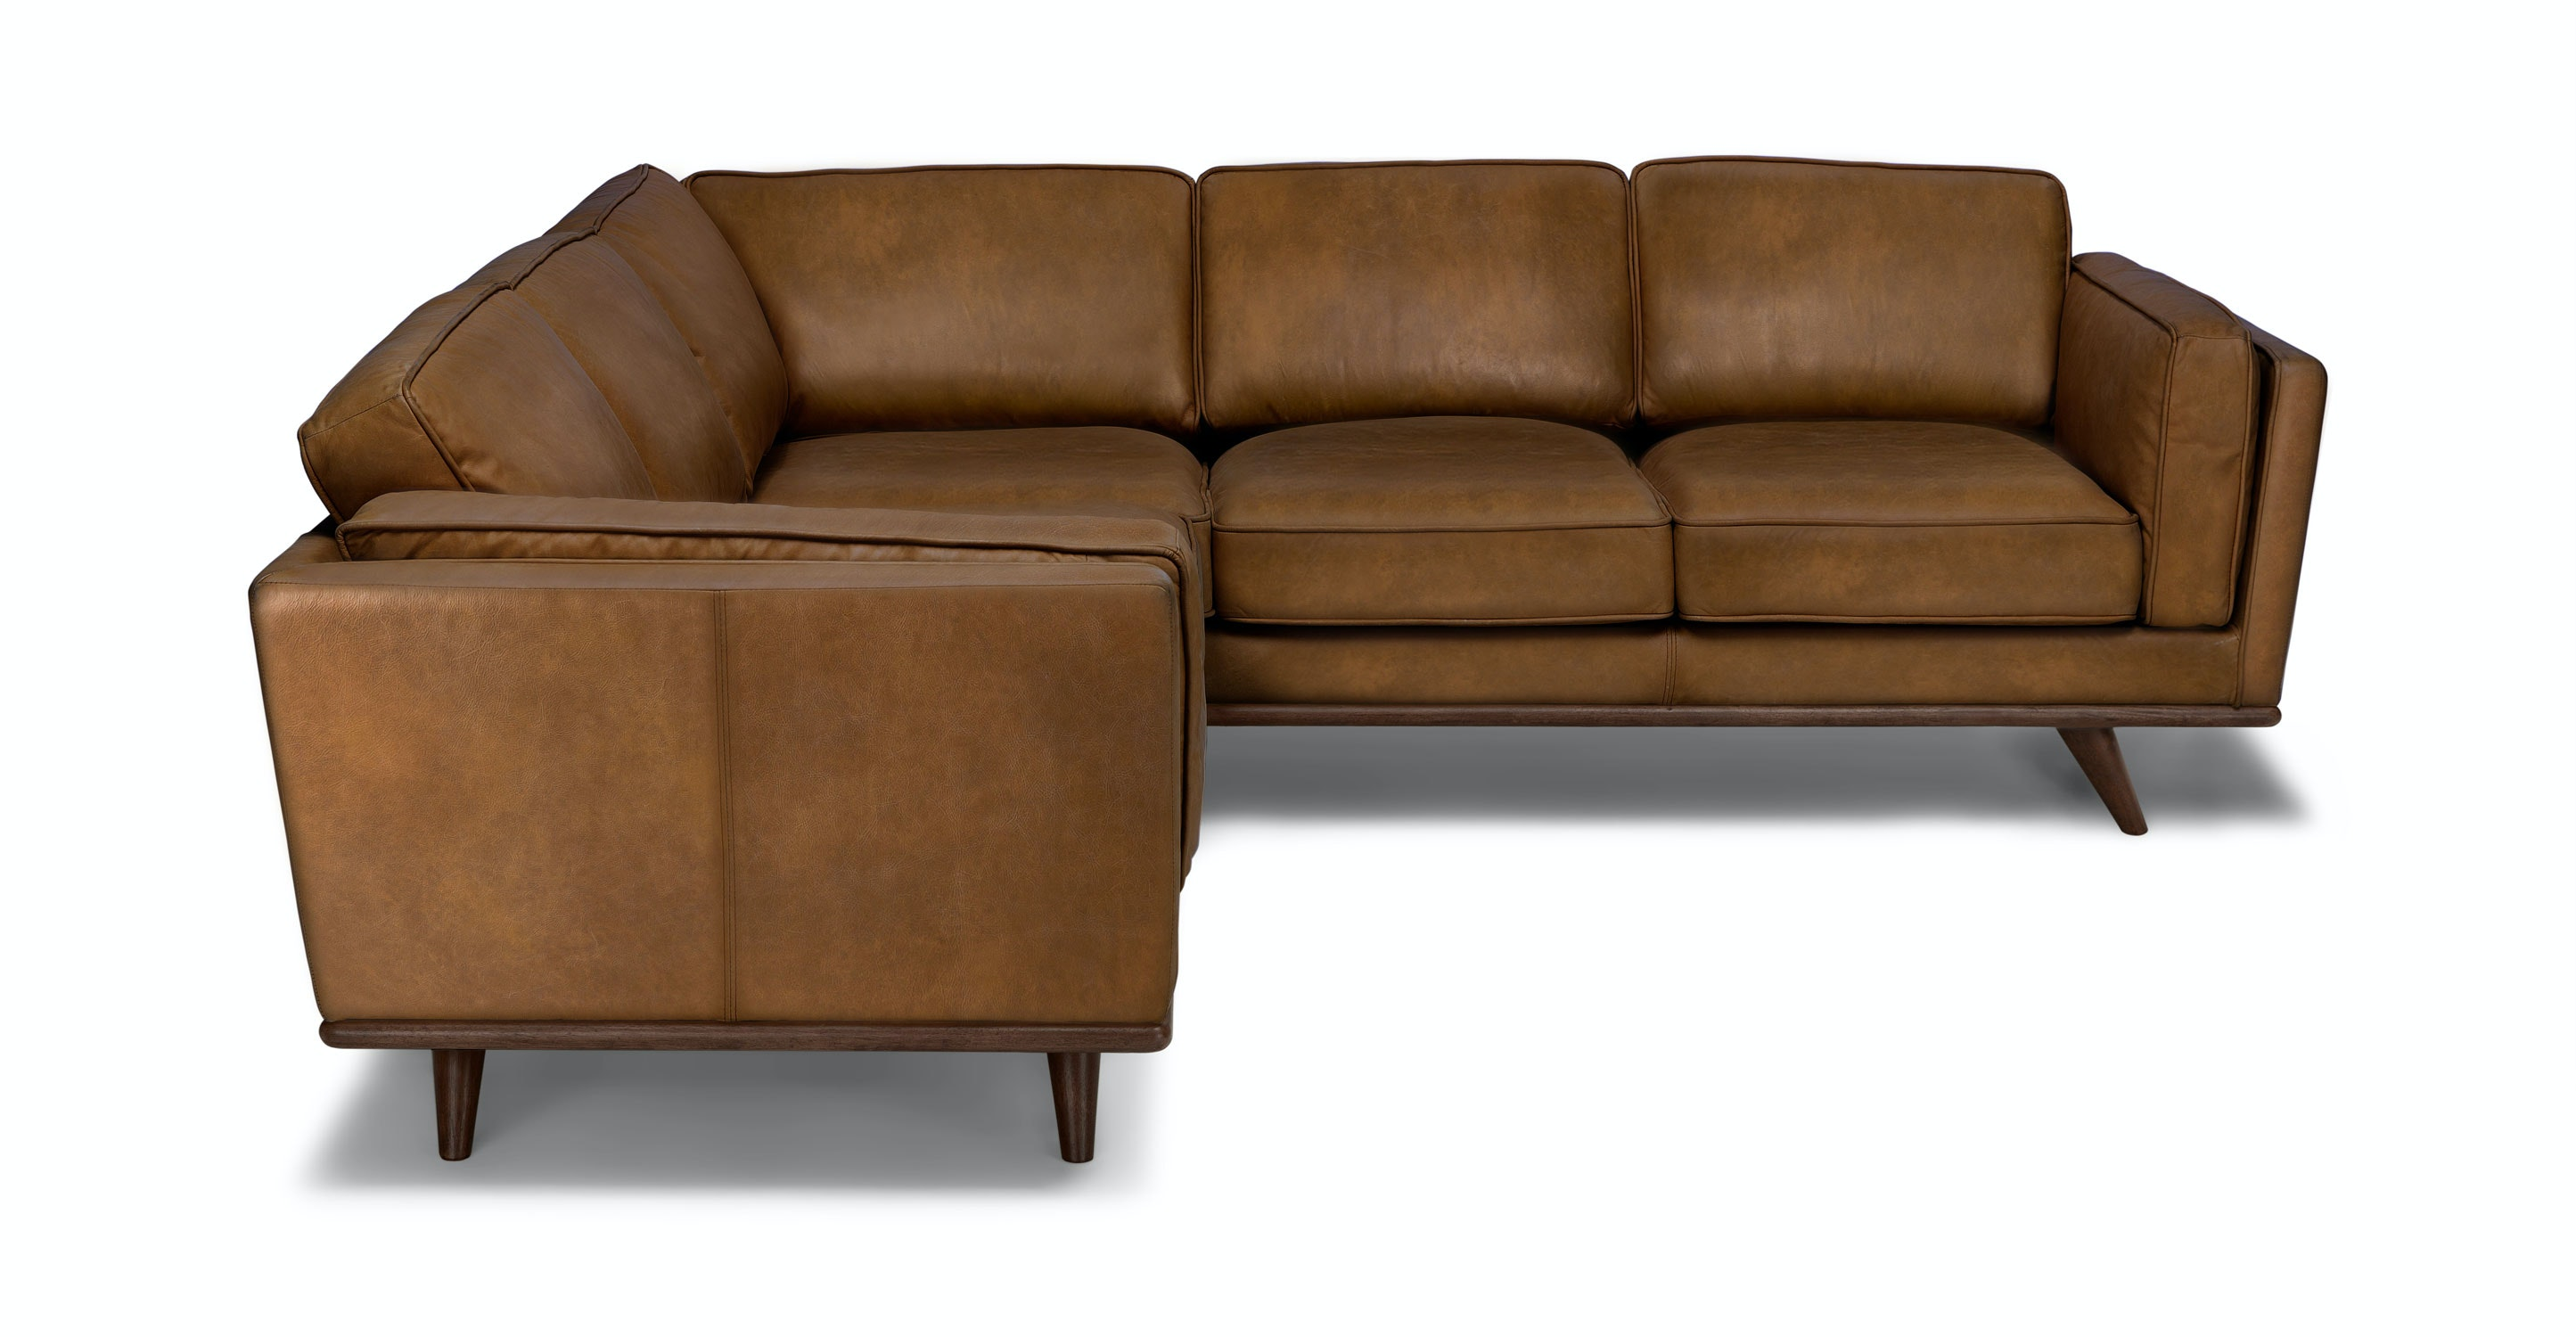 Beau Timber Oxford Tan Corner Sectional   Sectionals   Article | Modern,  Mid Century And Scandinavian Furniture